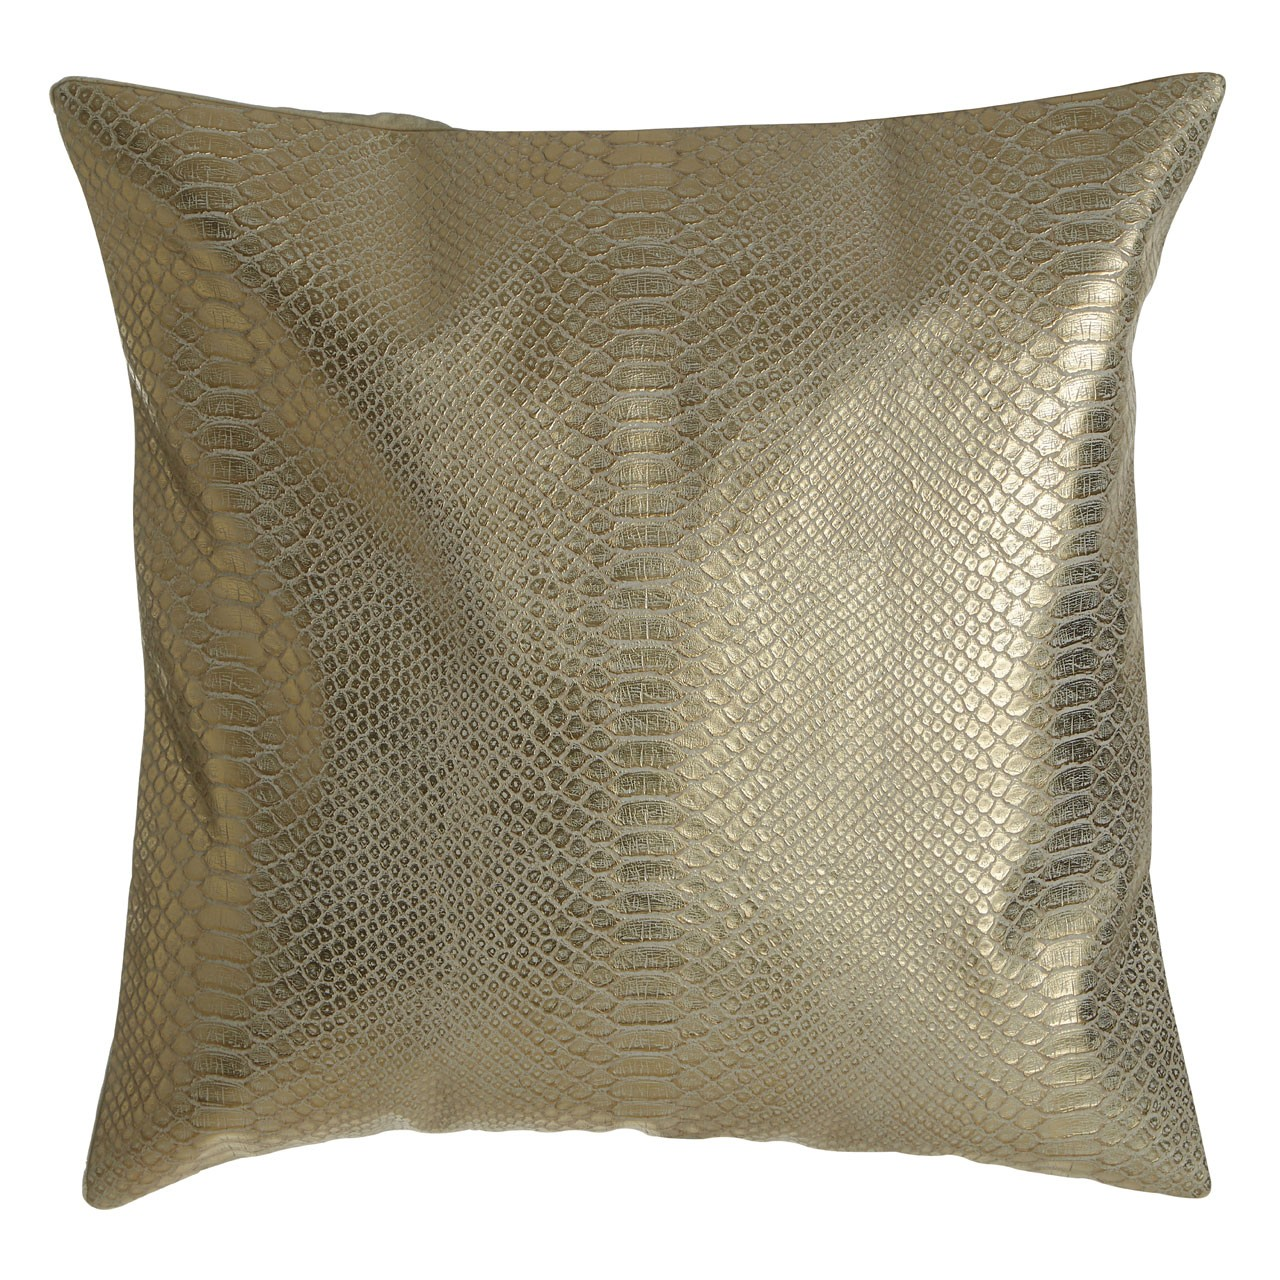 Prime Furnishing Kensington Townhouse Cushion, Gold